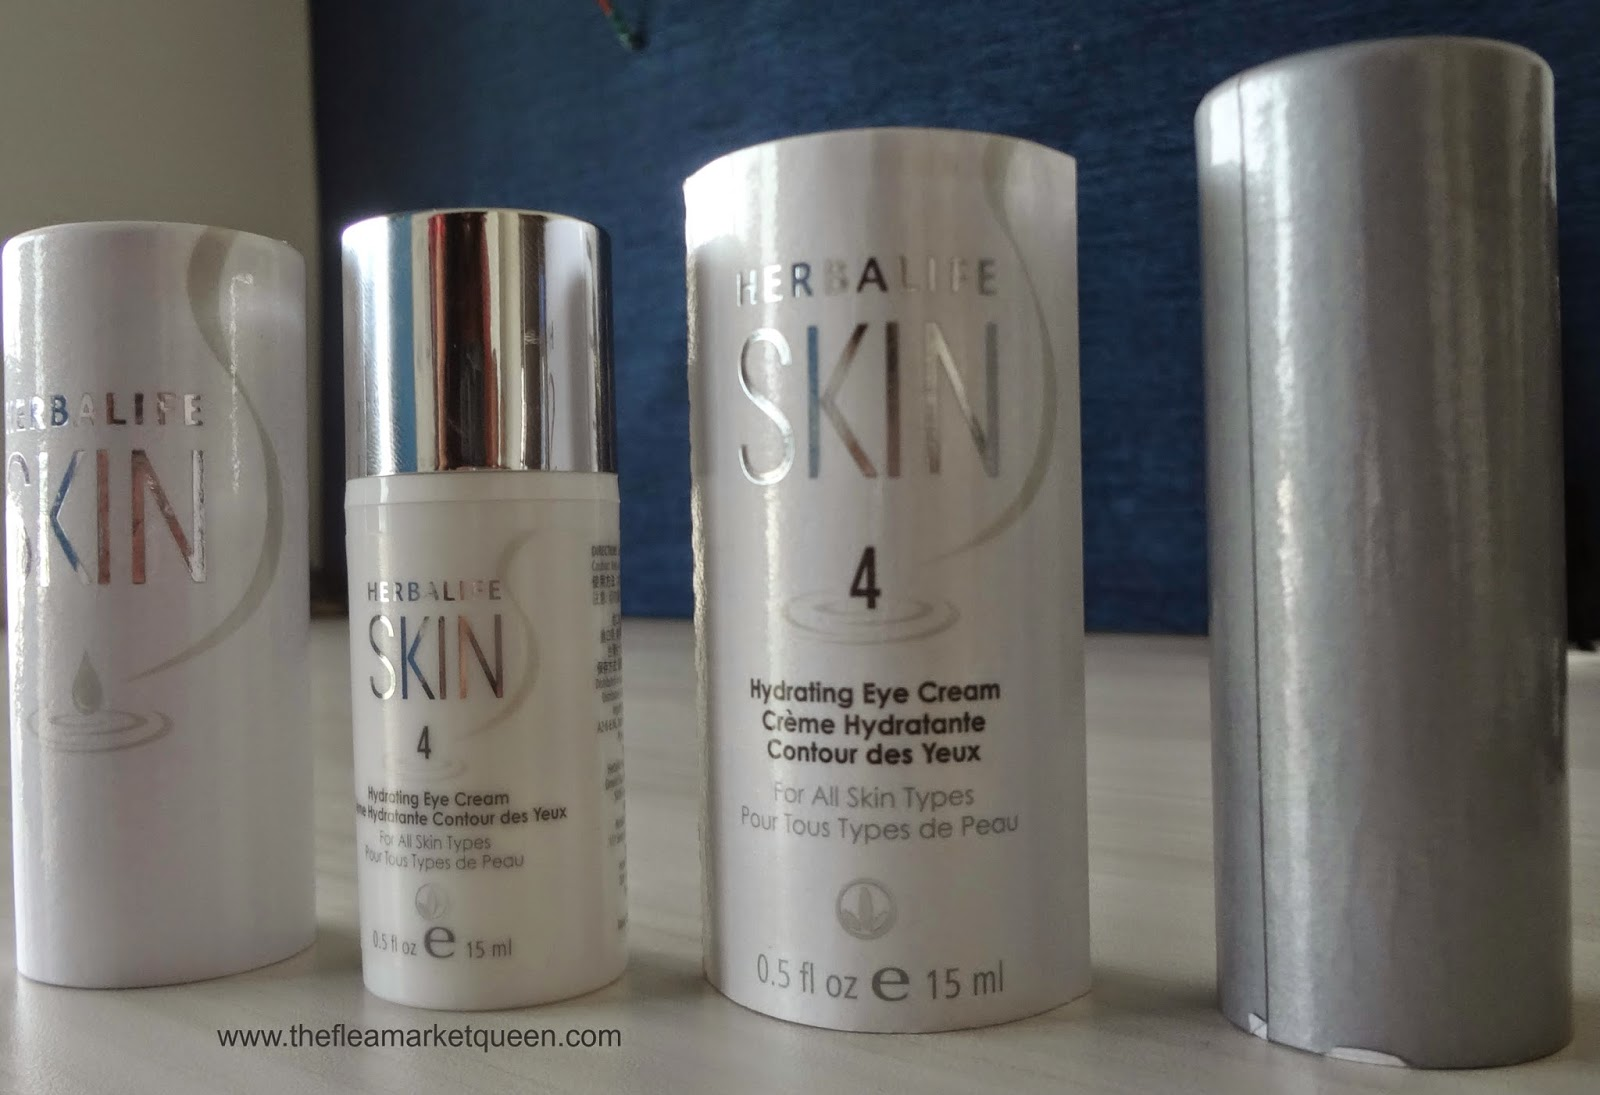 Review 7 Day Challenge Herbalife Skin Review The Fleamarket Queen